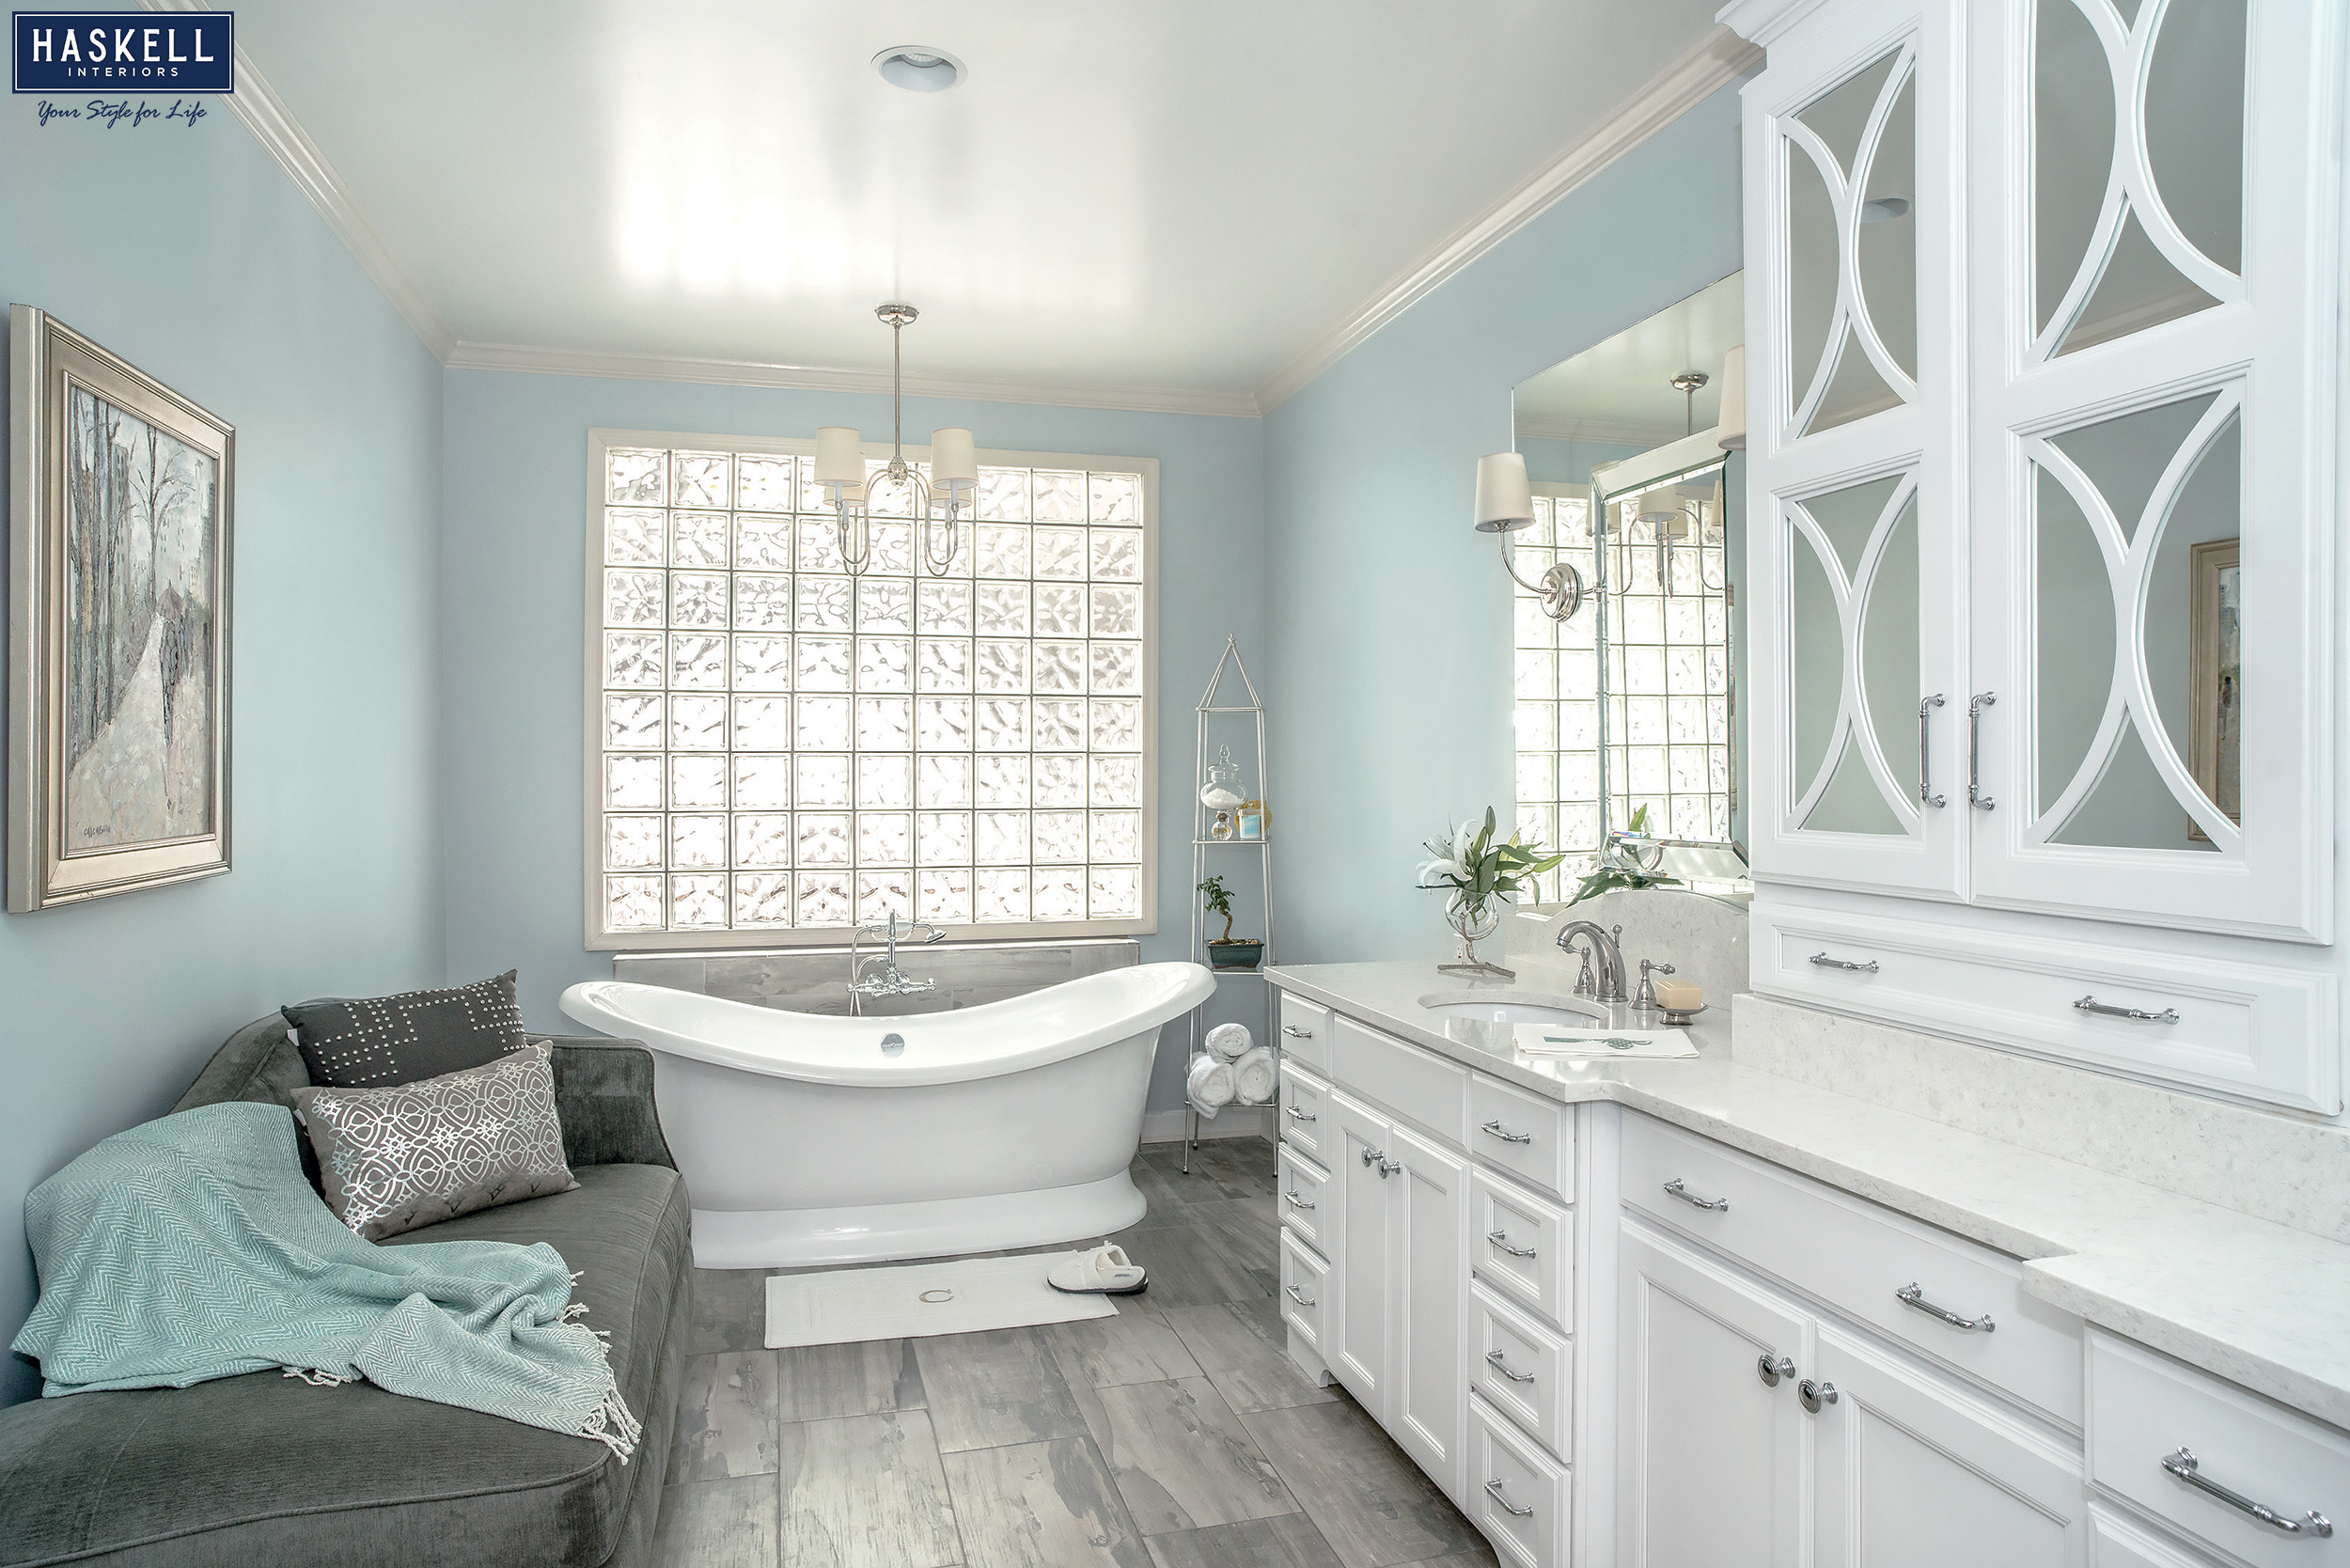 Choosing the Right Bathtub for your Master Bath - Haskell\'s Blog